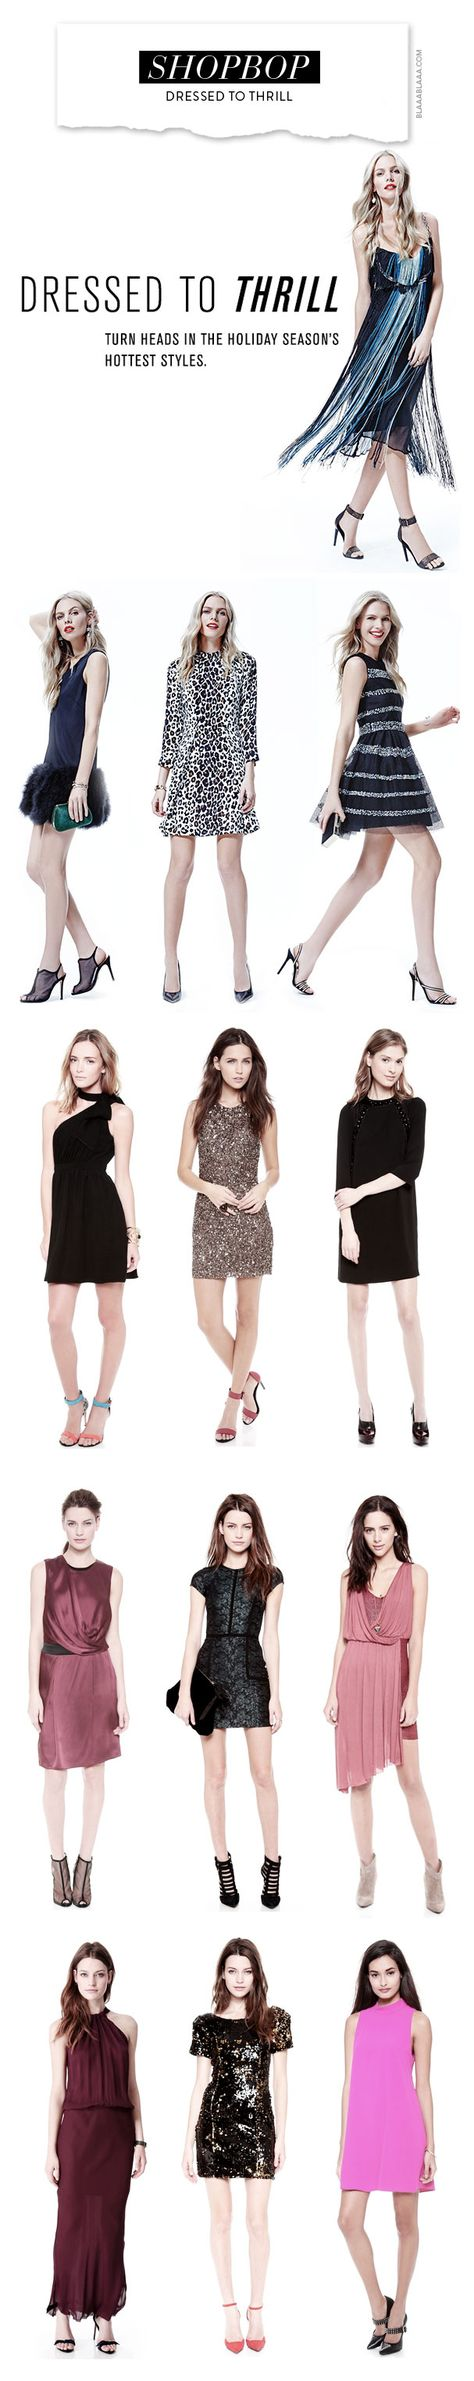 Shopbop – Dressed to Thrill